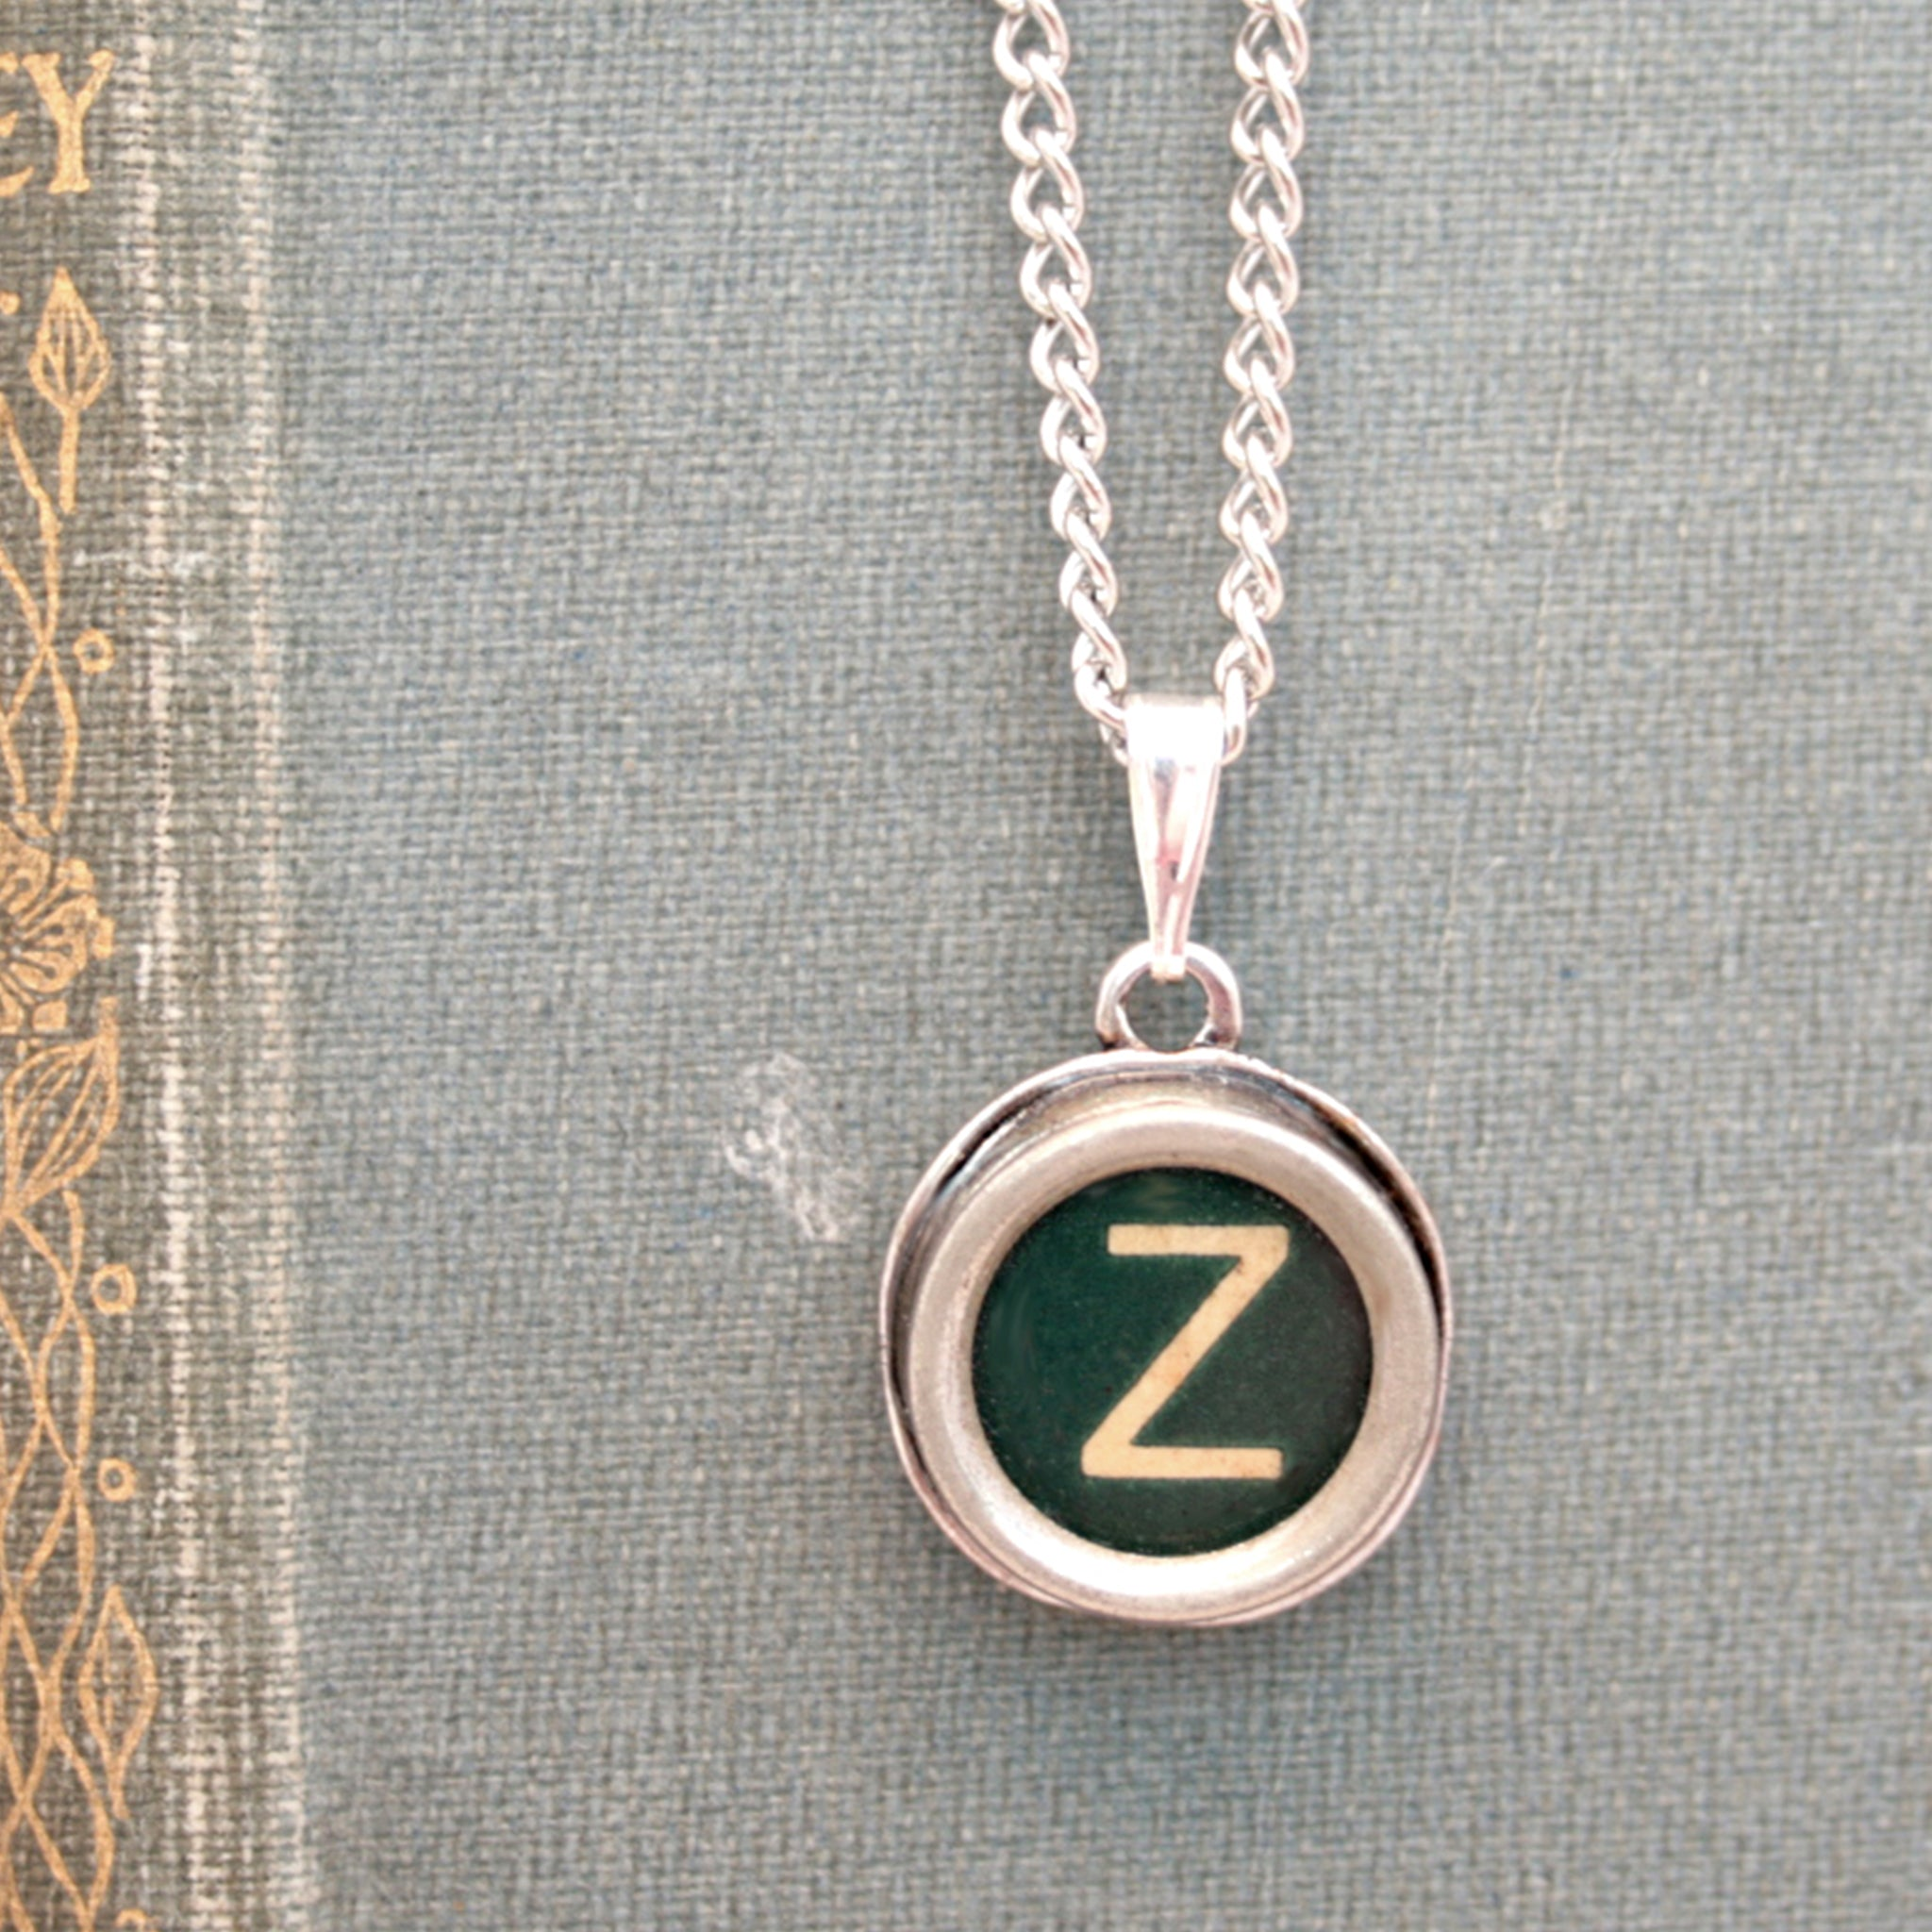 Green Z letter necklace made of real typewriter key